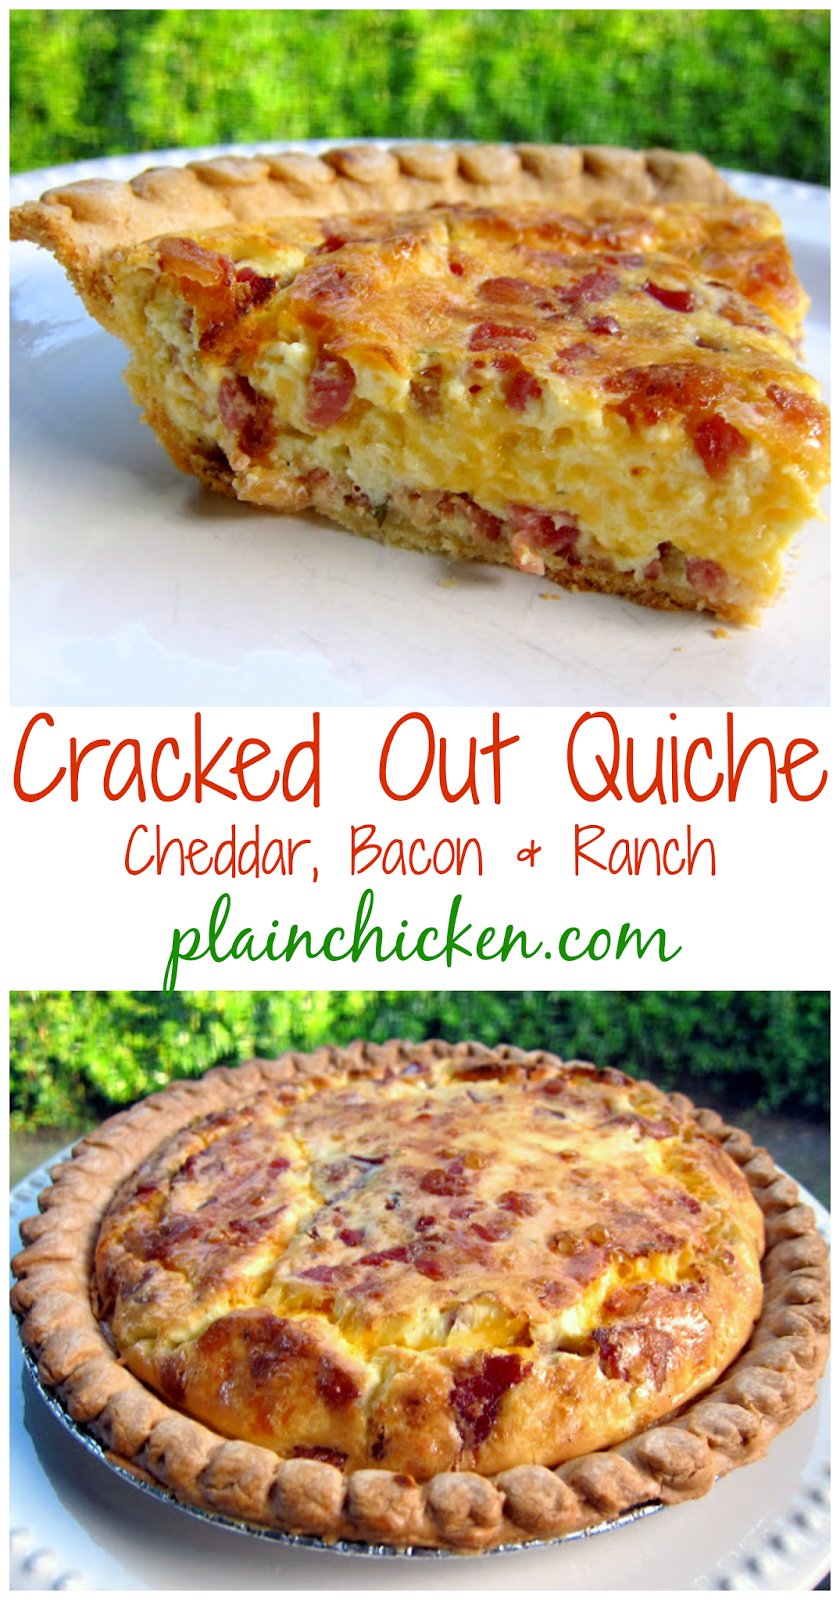 Cracked Out Quiche Recipe - homemade quiche filled with cheddar, bacon and ranch. SOOO good! Can make ahead of time and freeze unbaked for a quick breakfast/dinner later.